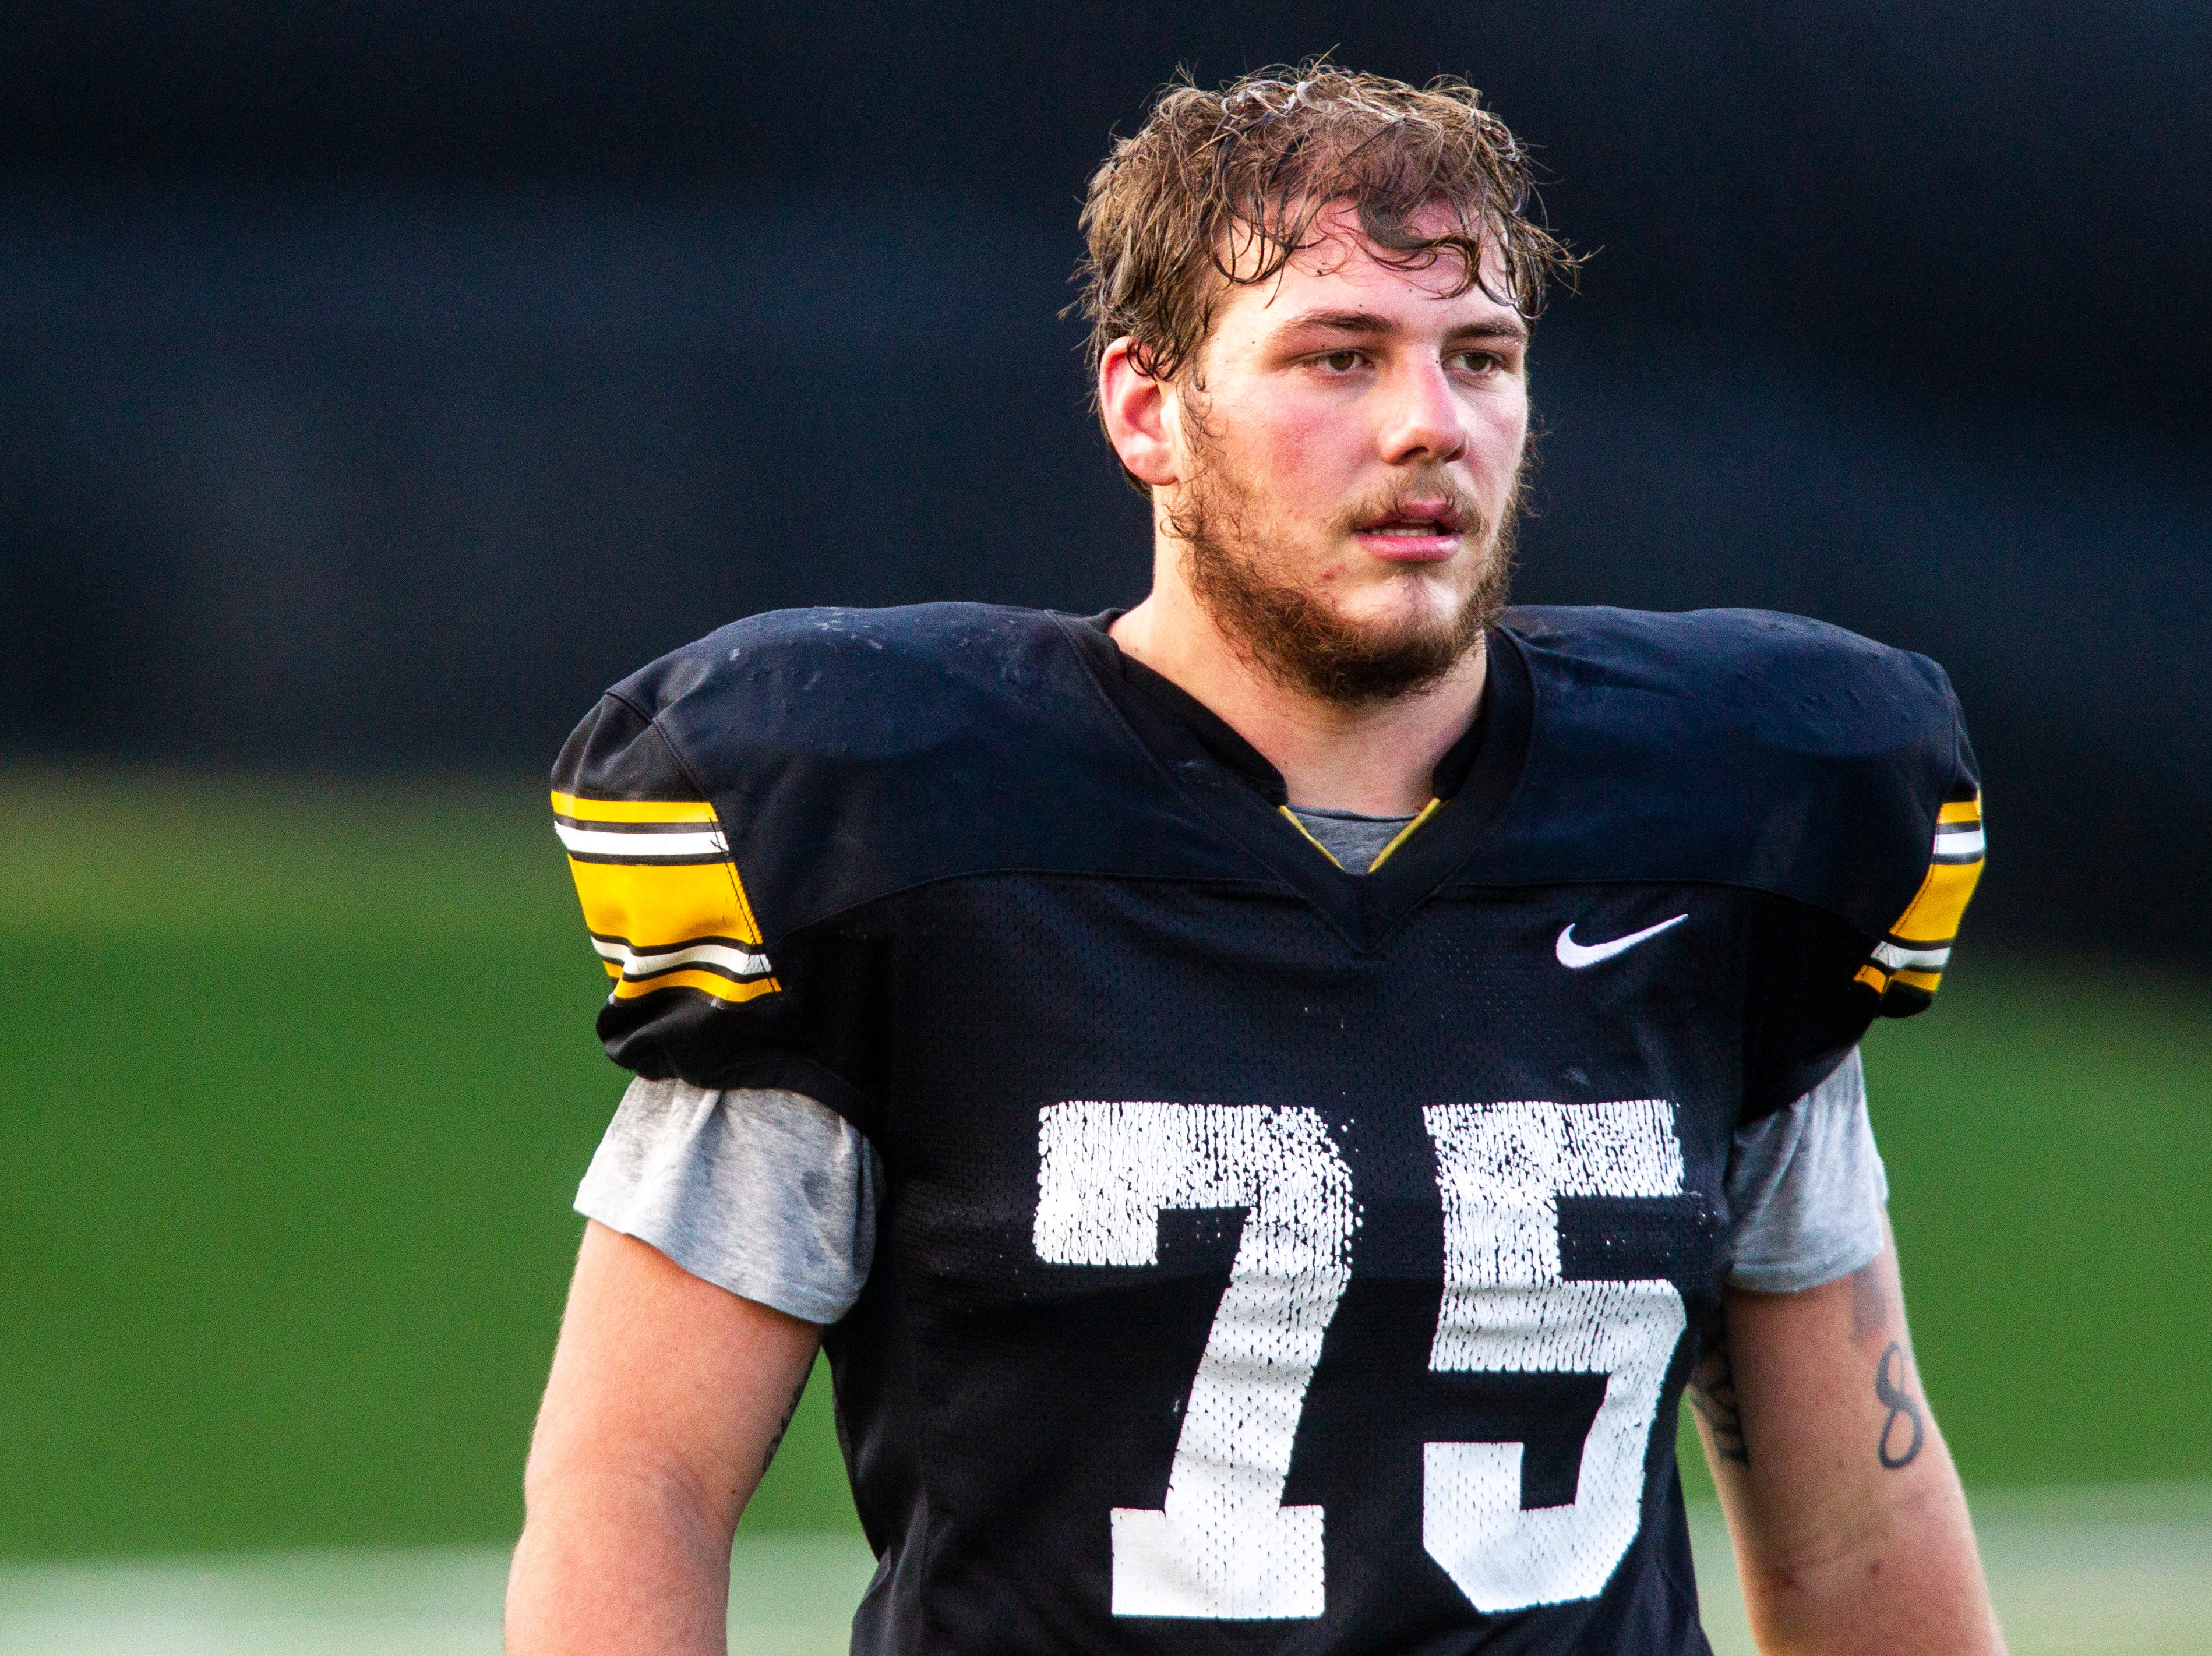 Iowa offensive lineman Jeff Jenkins (75) is pictured during the final spring football practice, Friday, April 26, 2019, at the University of Iowa outdoor practice facility in Iowa City, Iowa.